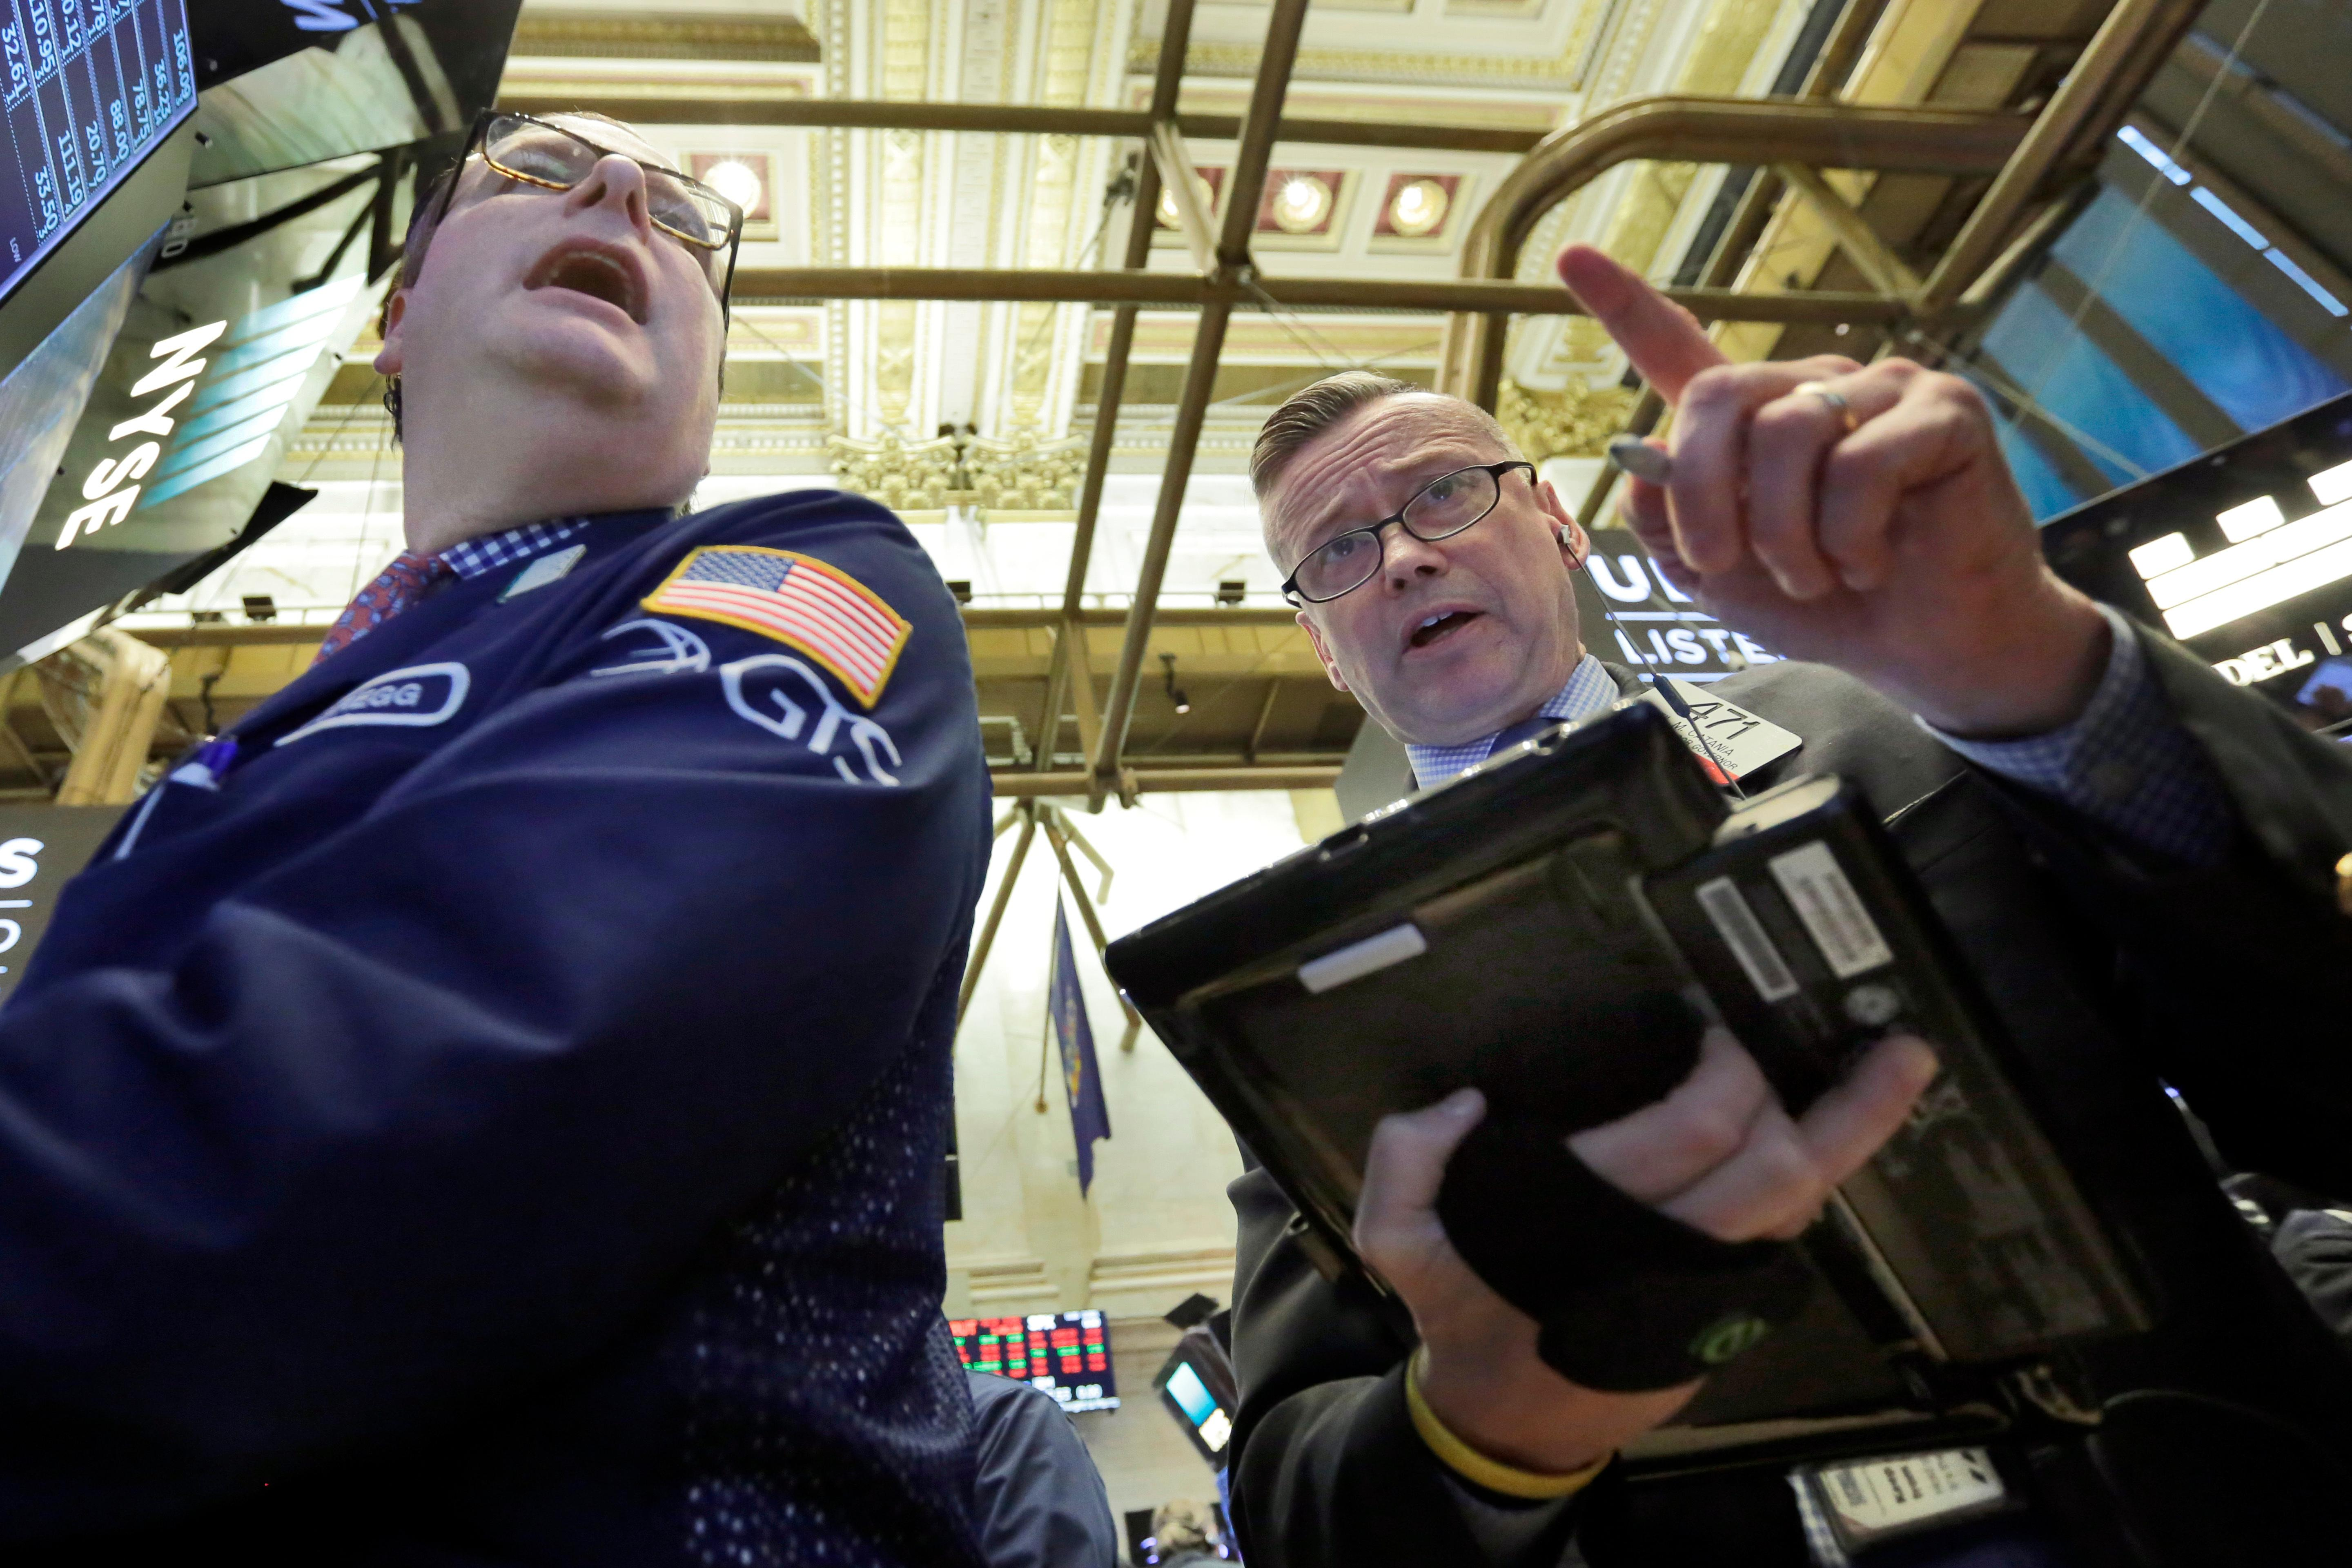 Specialist Gregg Maloney, left, and trader Neil Catania work on the floor of the New York Stock Exchange, Tuesday, Feb. 6, 2018. The Dow Jones industrial average fell as much as 500 points in early trading, bringing the index down 10 percent from the record high it reached on January 26.  (AP Photo/Richard Drew)